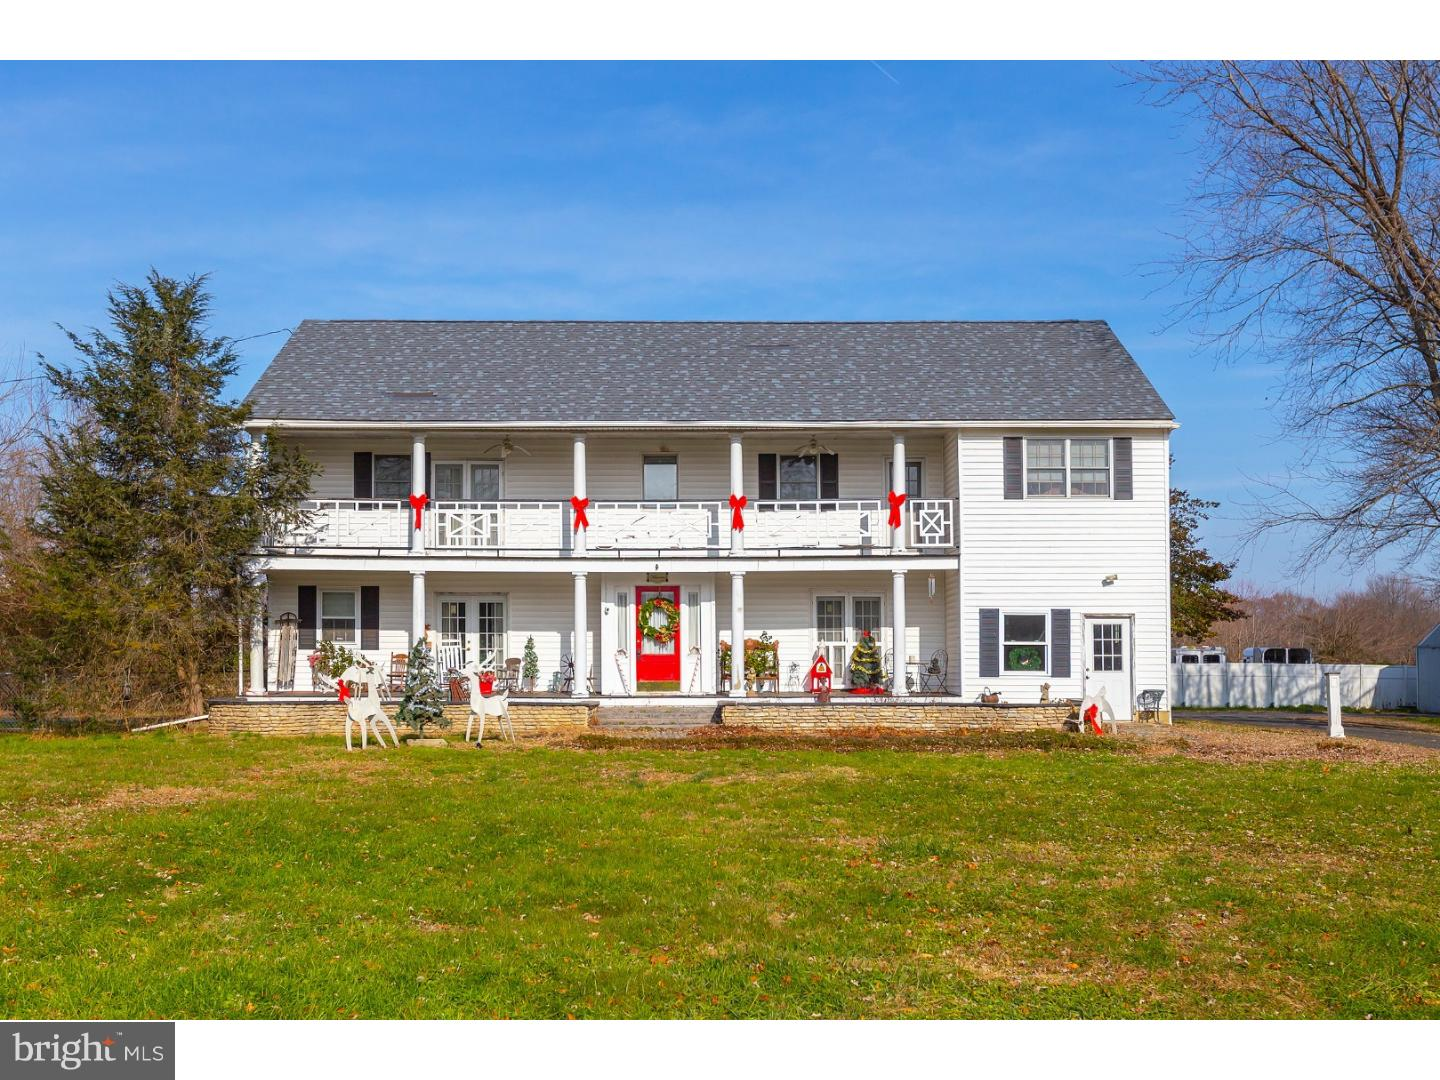 Single Family Home for Sale at 354 MONROEVILLE Road Monroeville, New Jersey 08343 United States